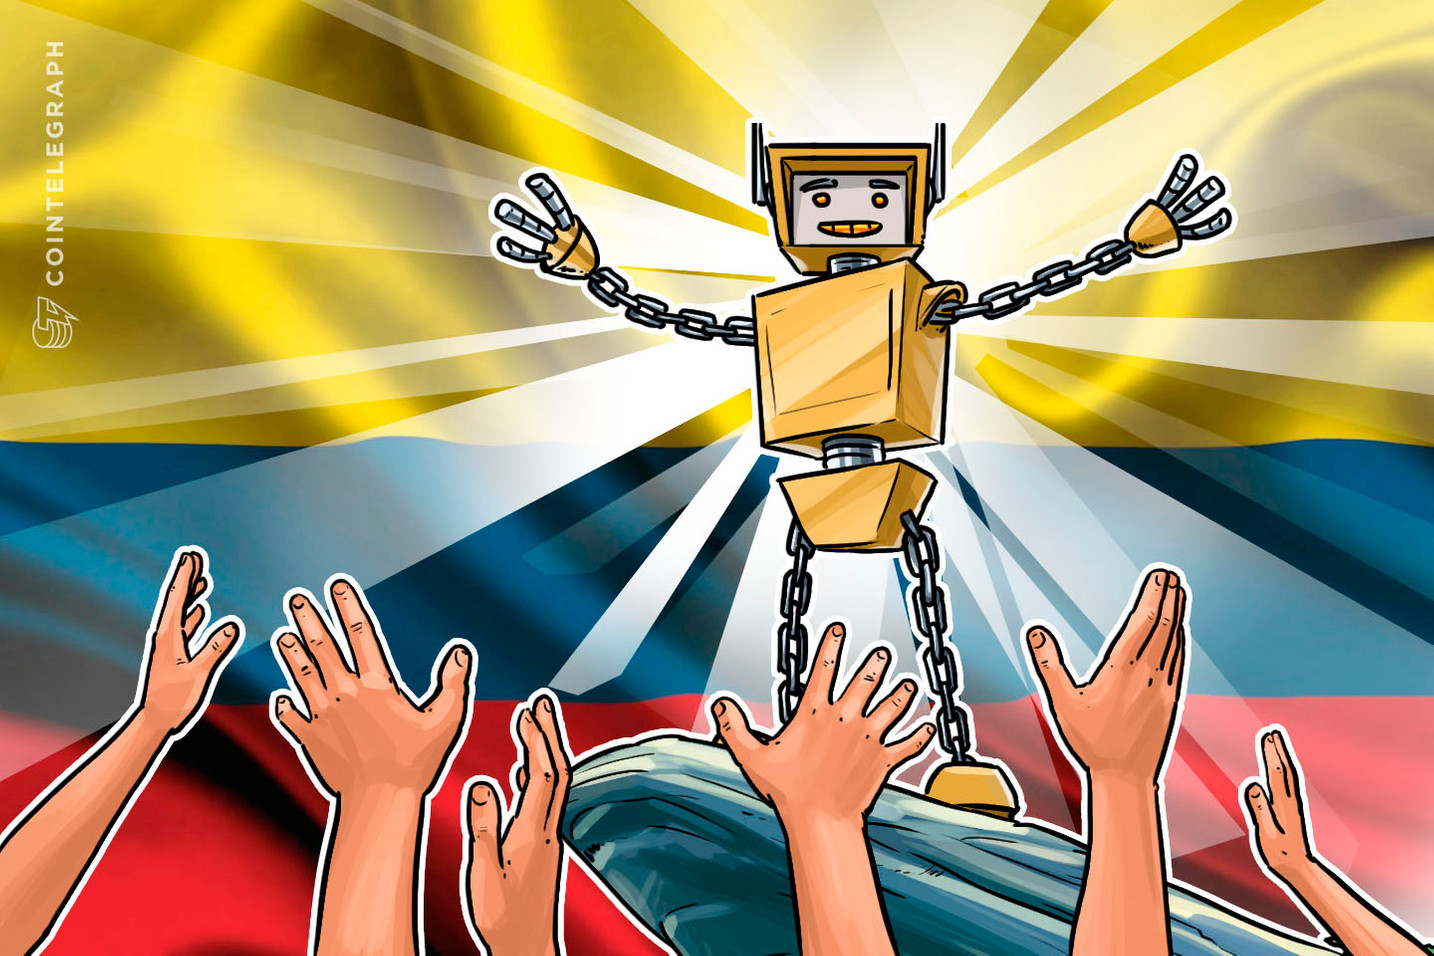 Colombian Senate Debate: 'Blockchain Could Change Lives'